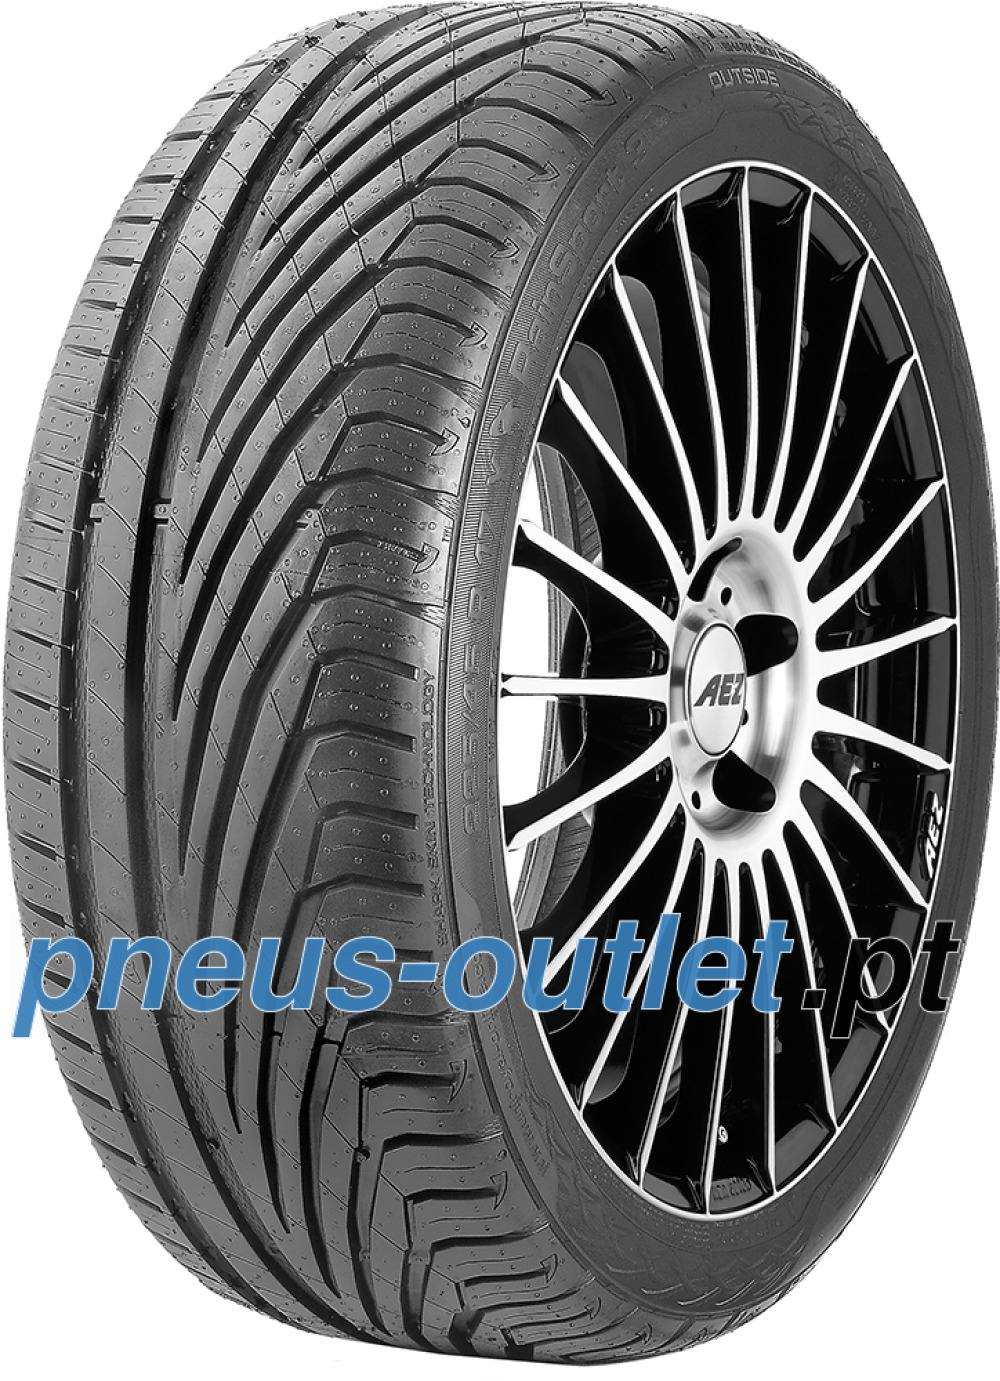 Uniroyal RainSport 3 ( 205/45 R16 83V com bordo da jante saliente )